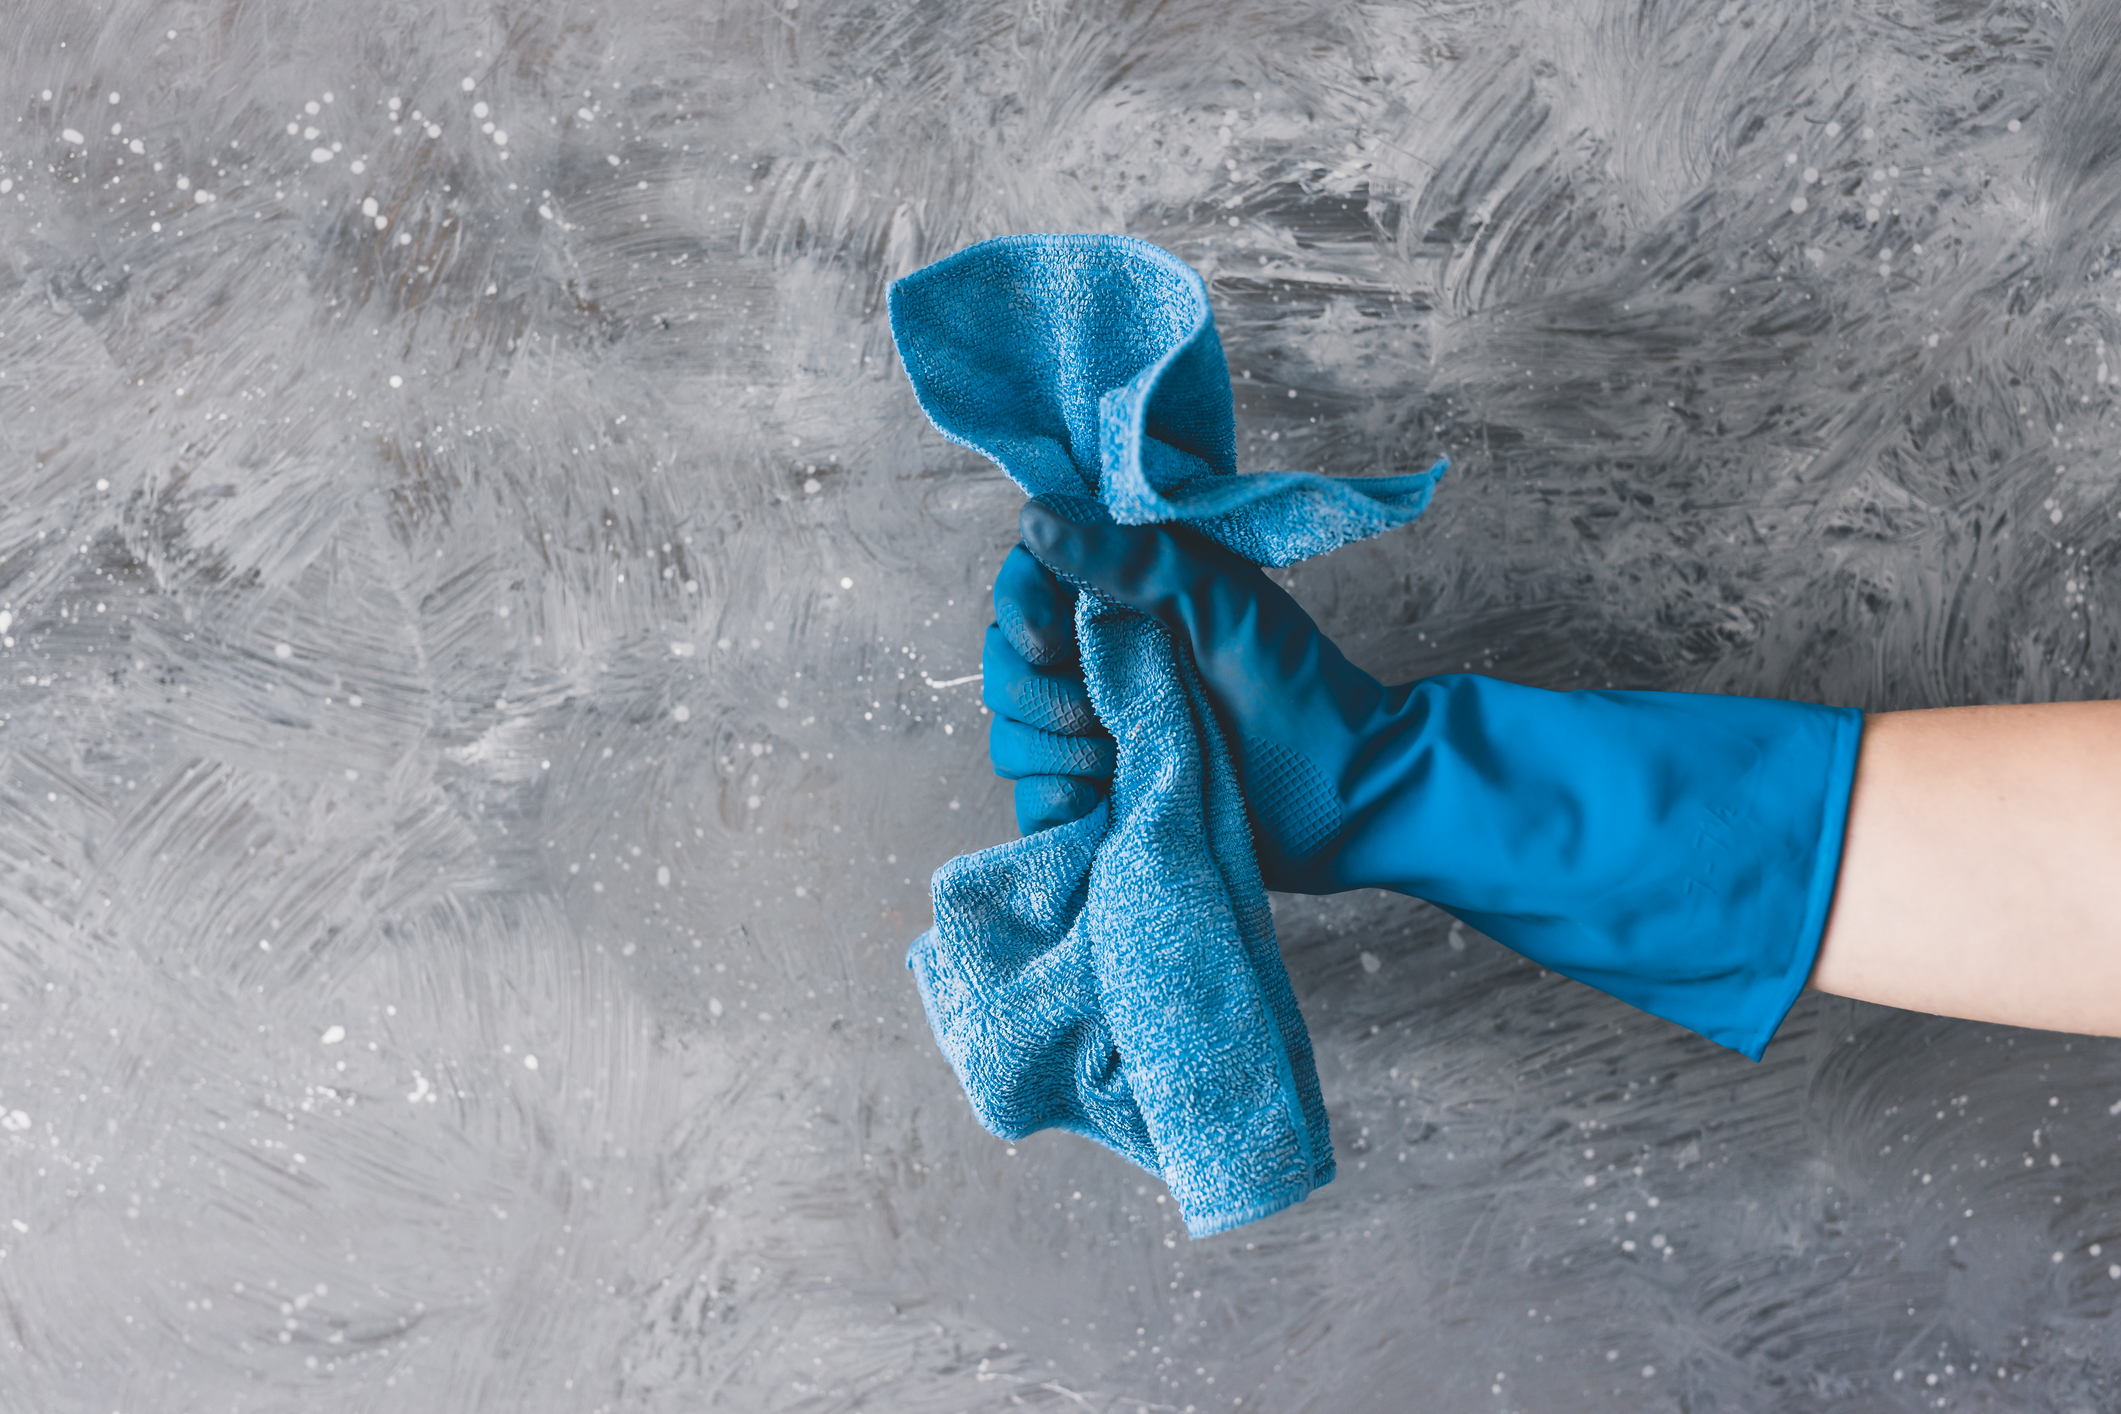 Combating Cold & Flu Season through Cleaning